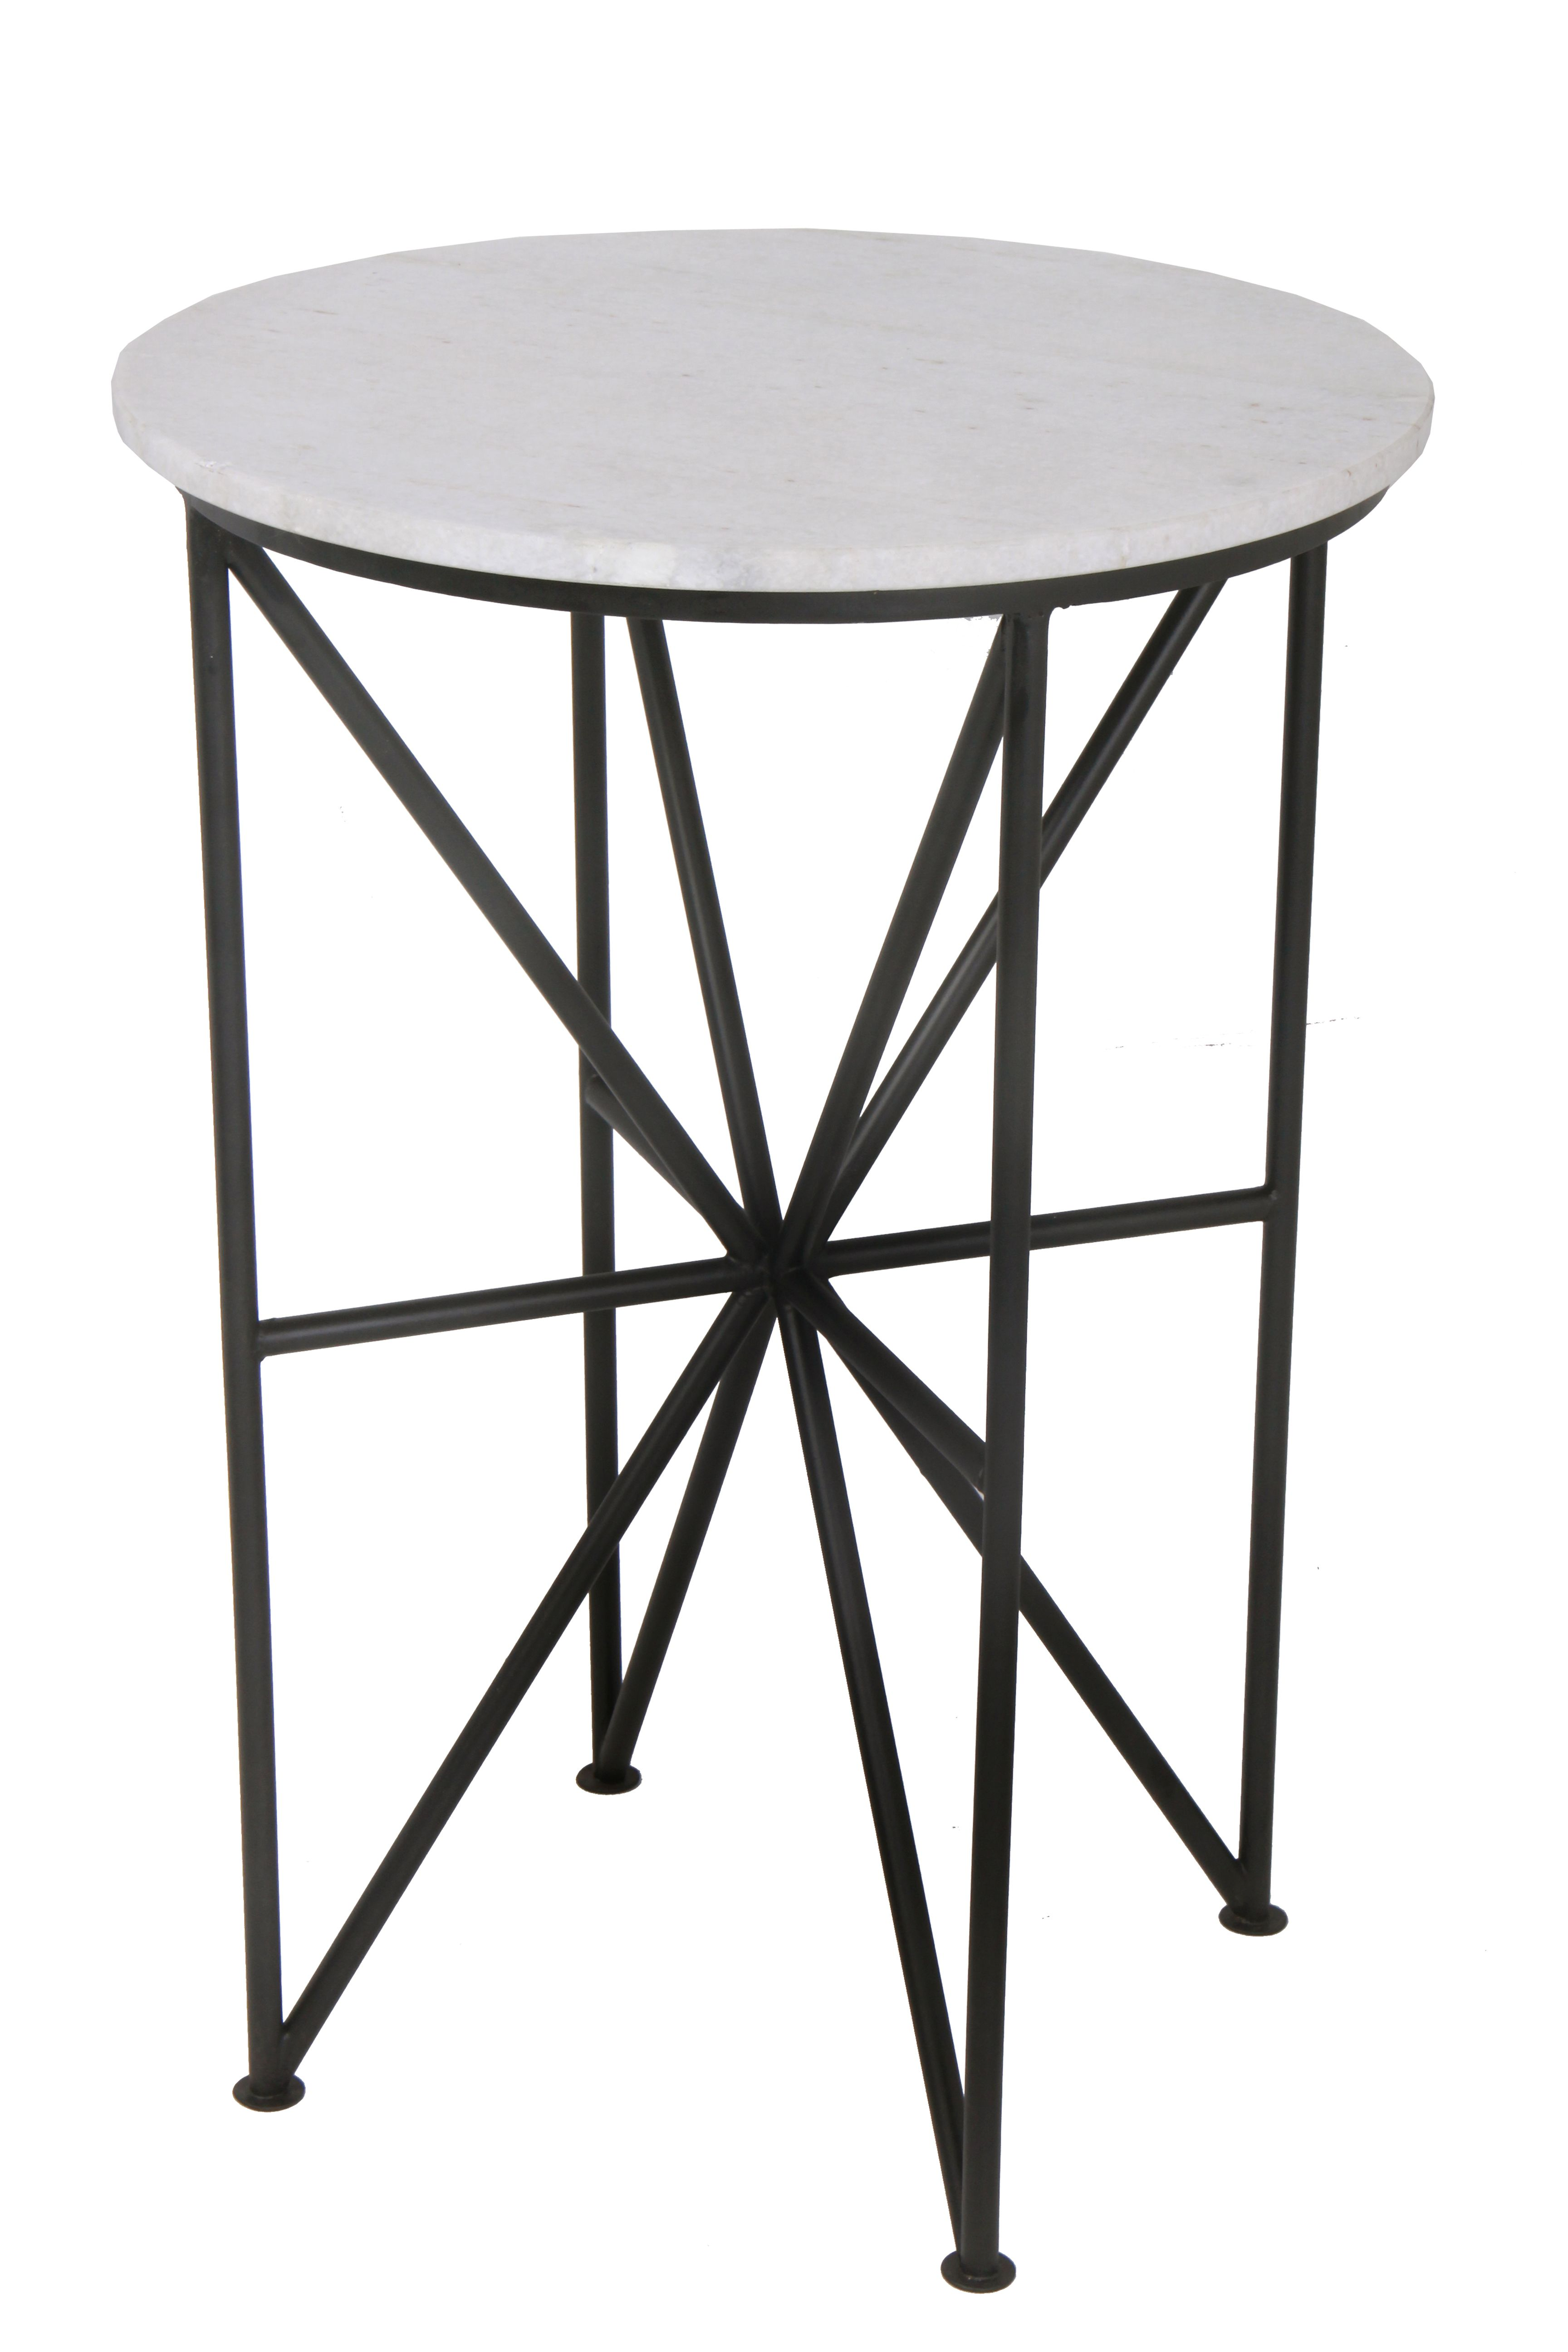 Parisa accent table black parisa accent table black home collections sofa